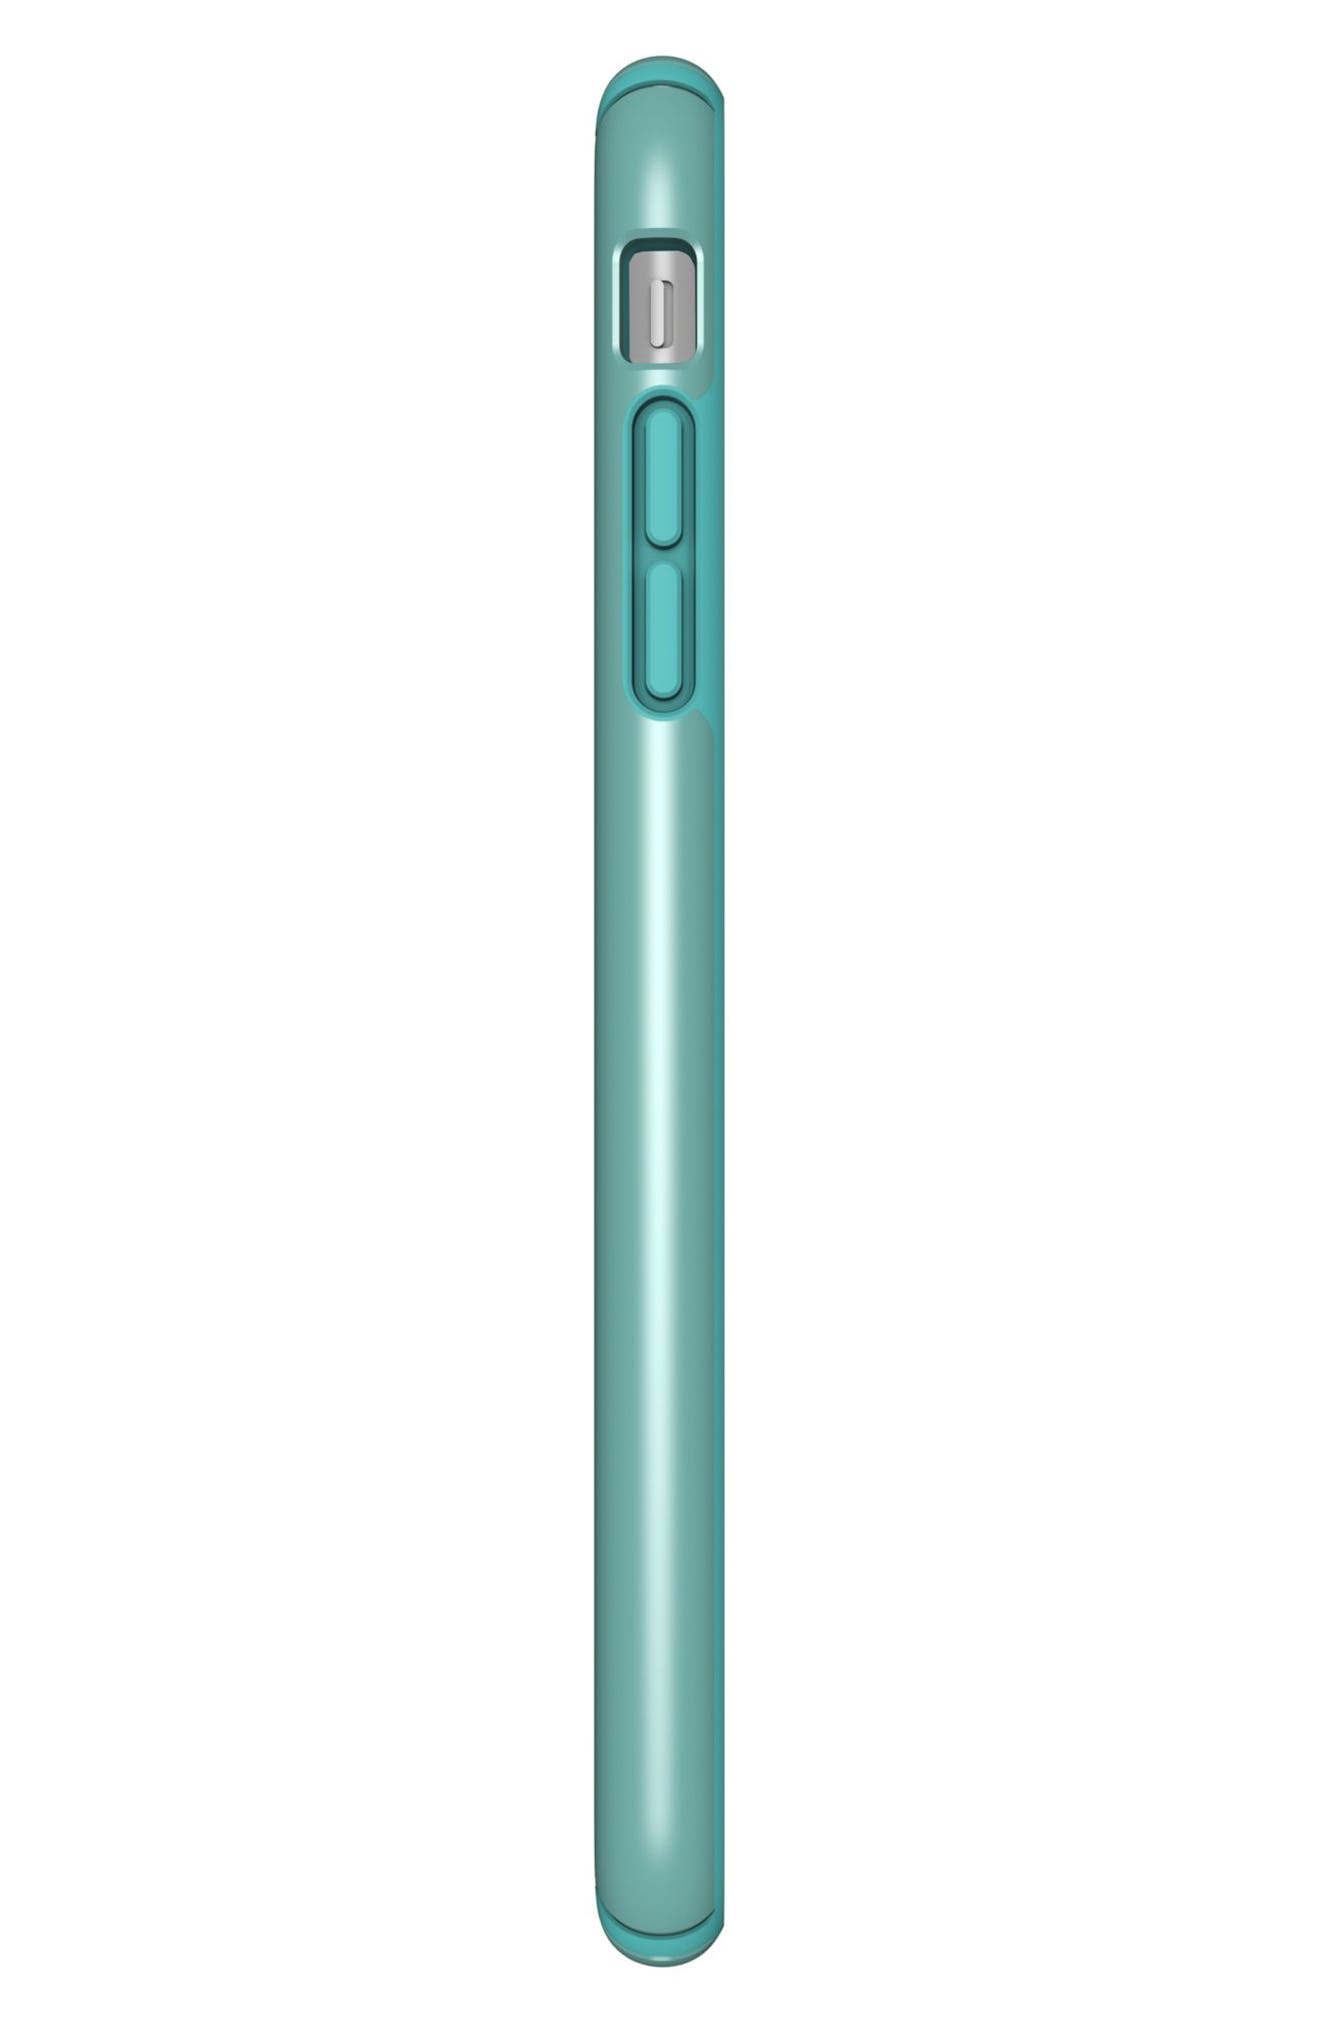 iPhone 6/6s/7/8 Plus Case,                             Alternate thumbnail 2, color,                             PEPPERMINT GREEN/ TEAL